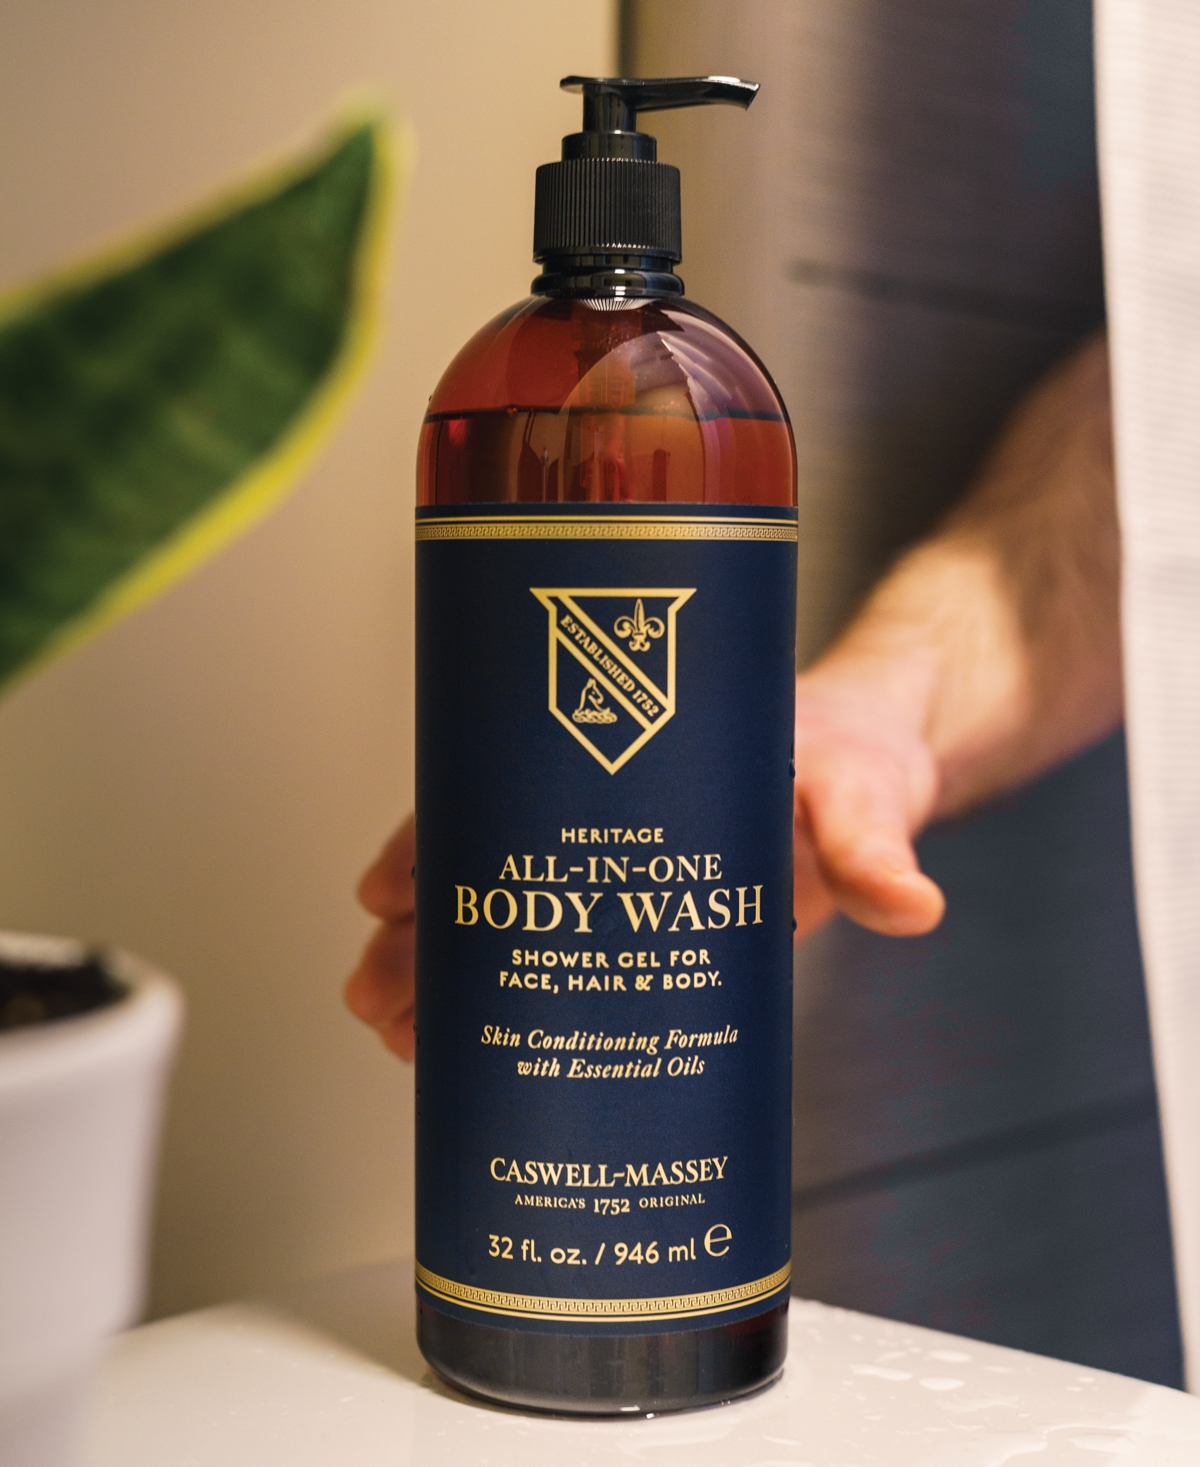 Caswell Massey Heritage All-In-One Body Wash, 32-oz.